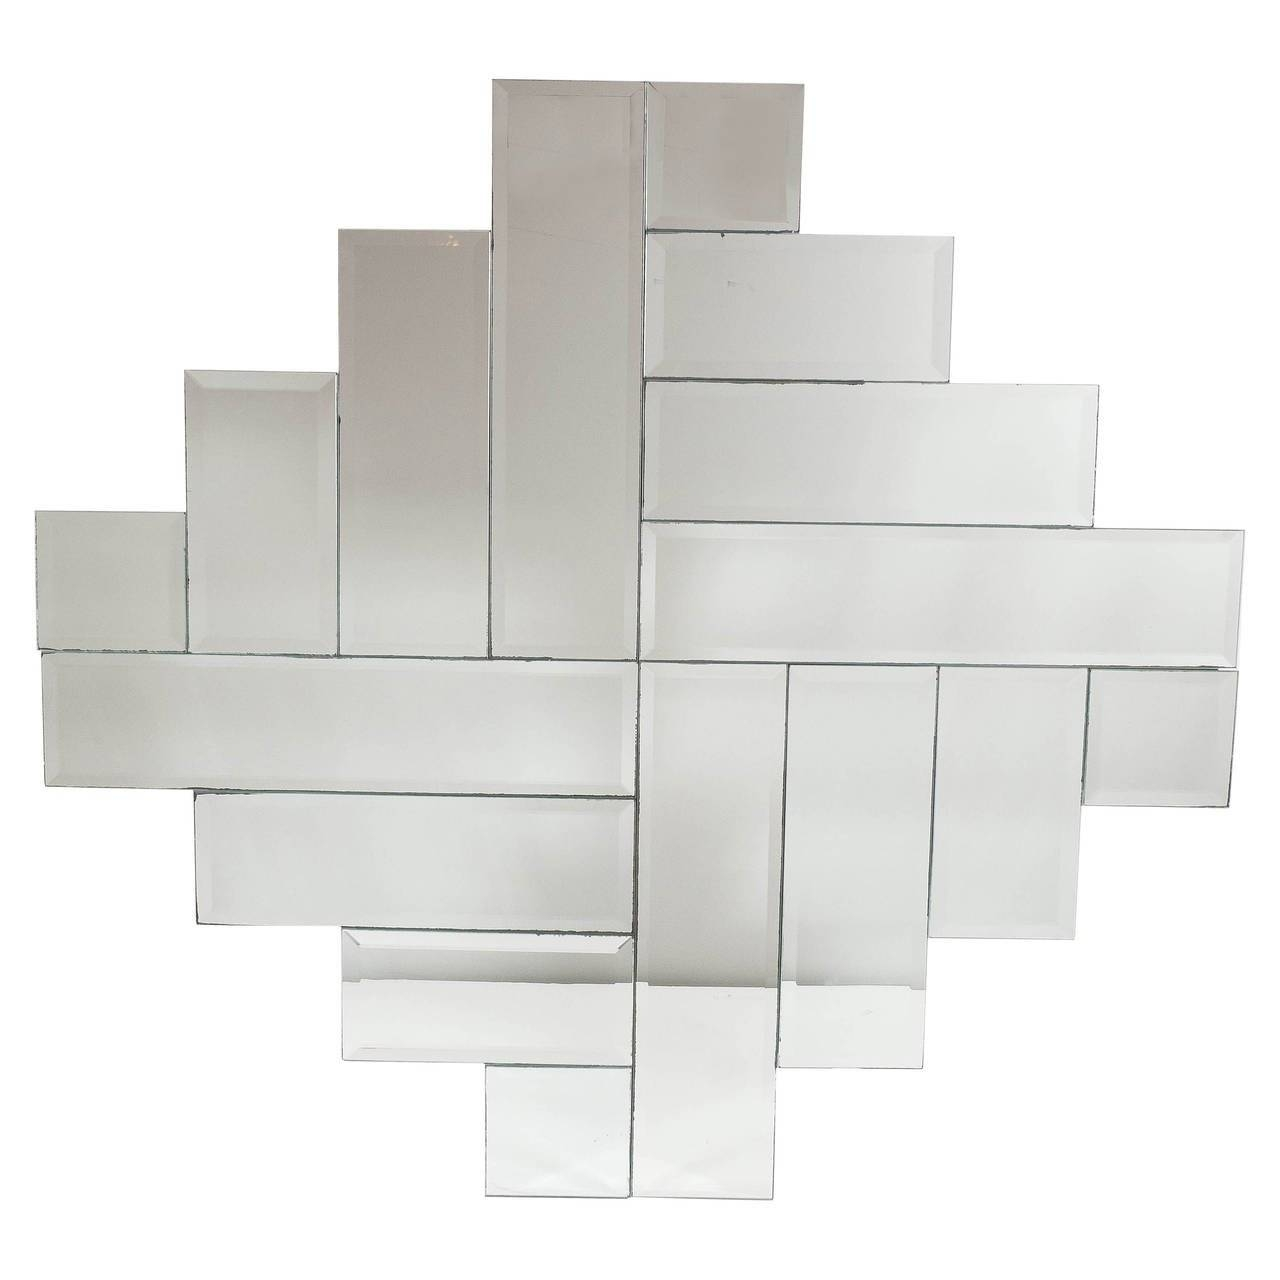 Mid-Century Modernist Art Deco Style Stepped Geometric Form intended for Art Deco Style Mirrors (Image 21 of 25)